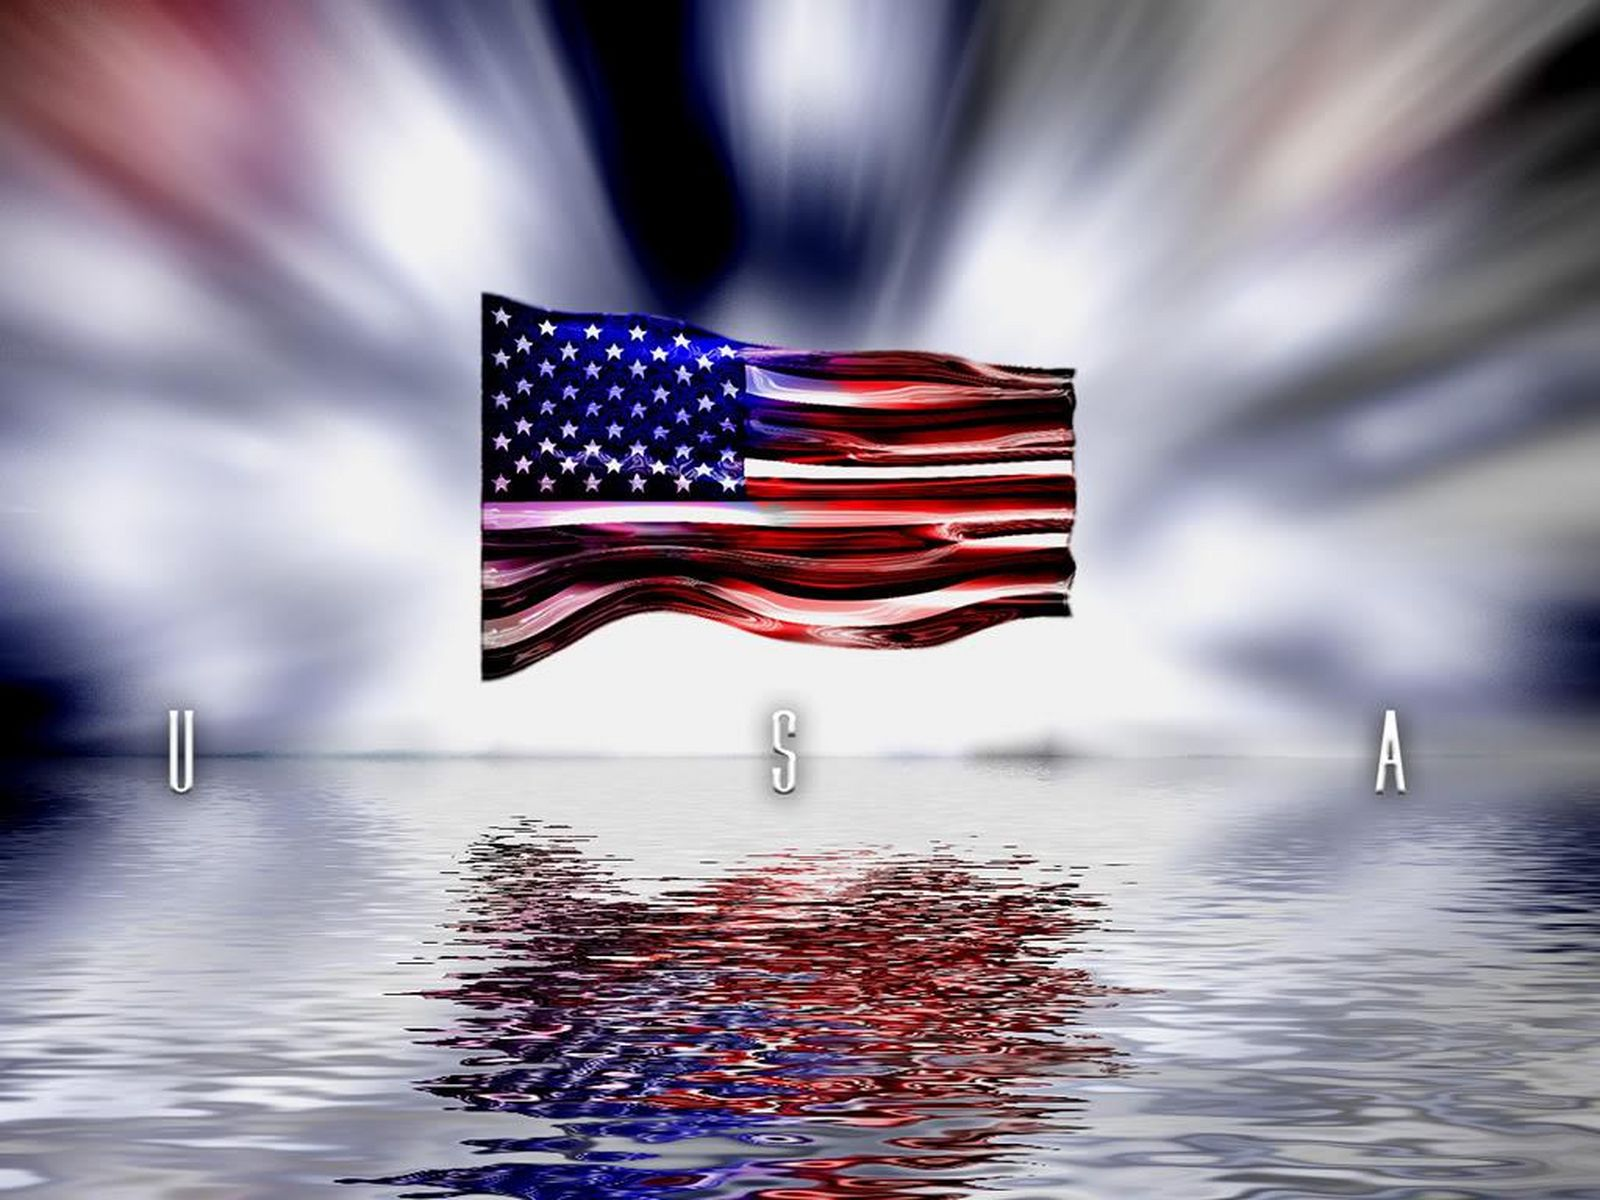 Patriotic Screensavers And Wallpaper Wallpapersafari